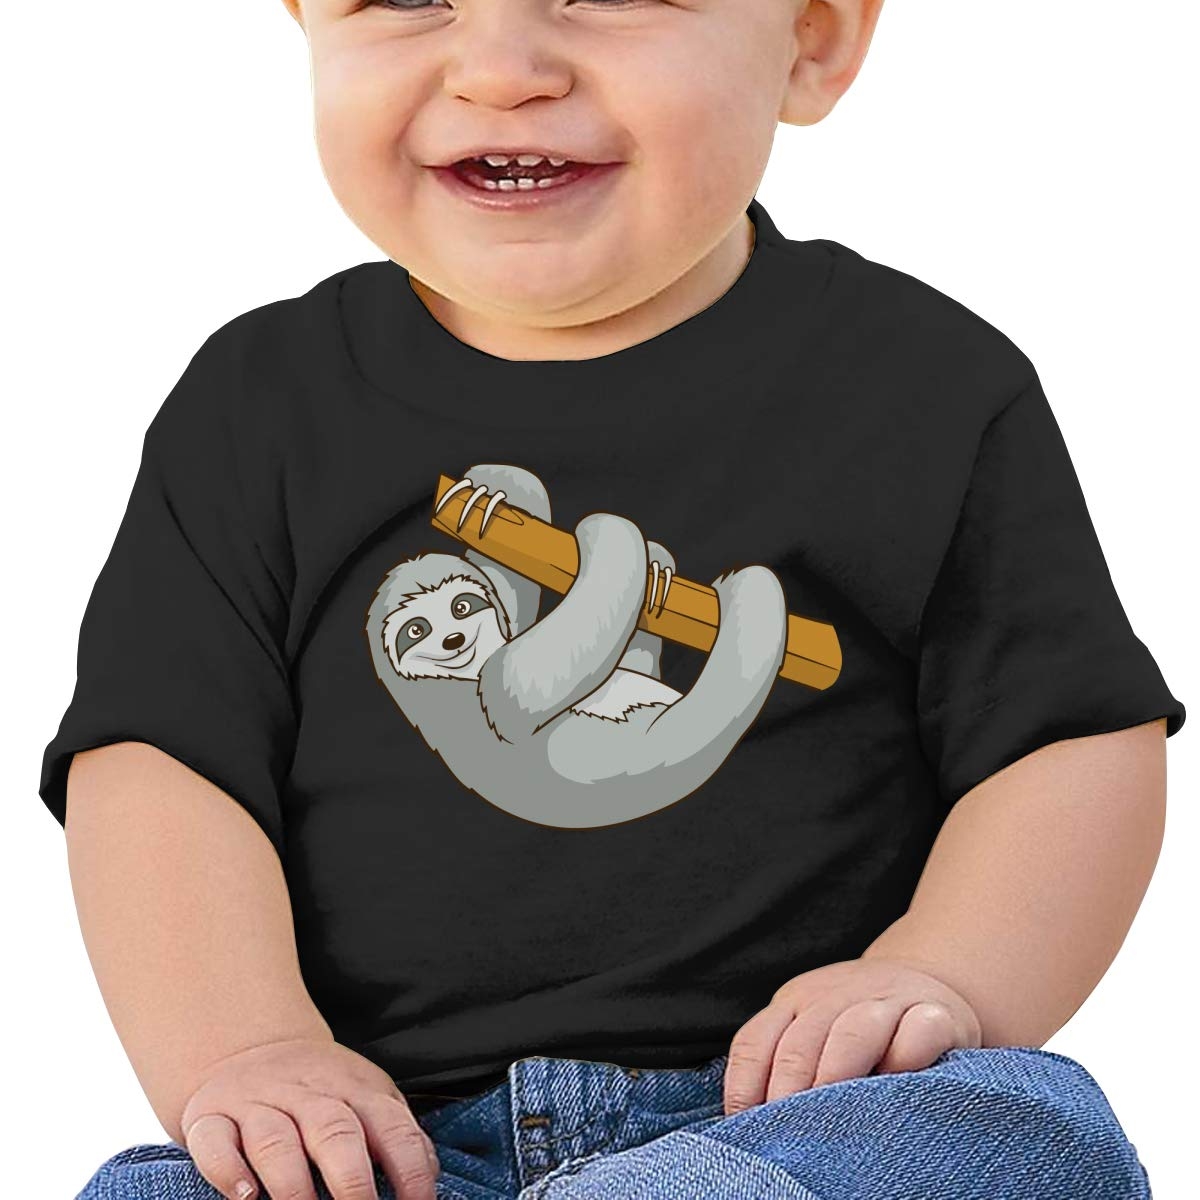 Sloth Cartoon Baby Girl Newborn Short Sleeve T-Shirt 6-24 Month Soft Tops